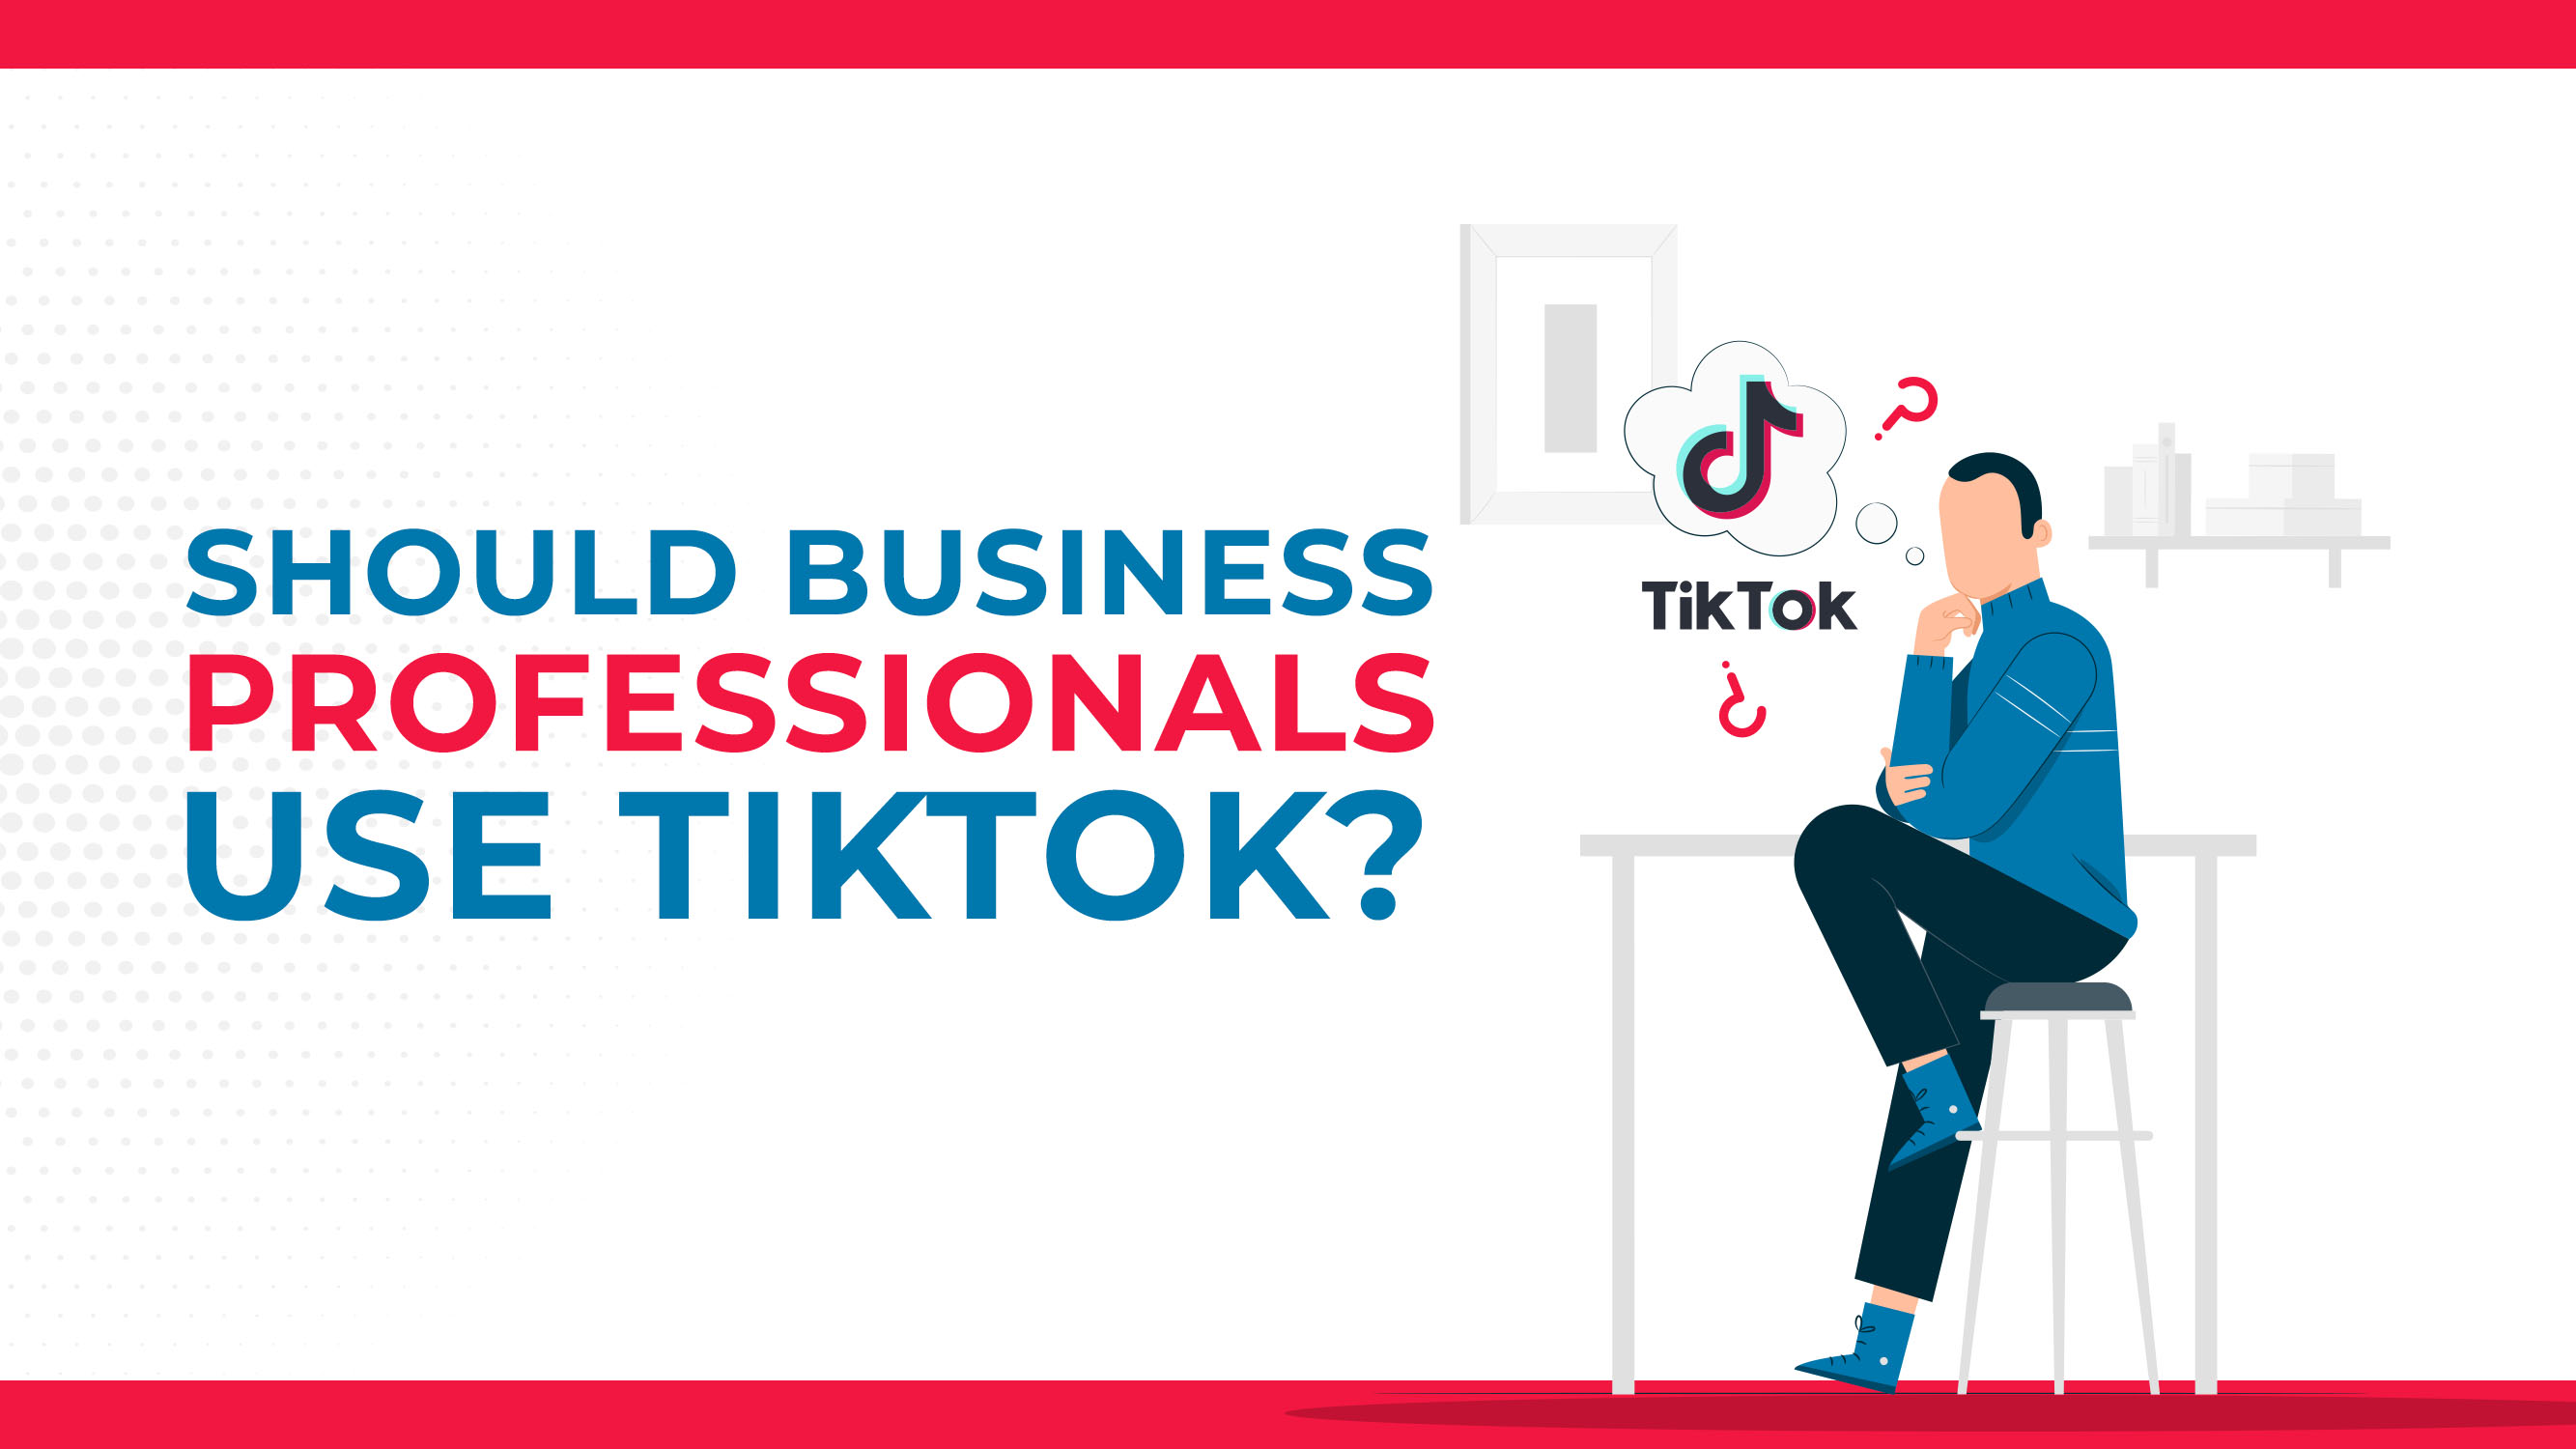 Should Business Professionals Use TikTok?